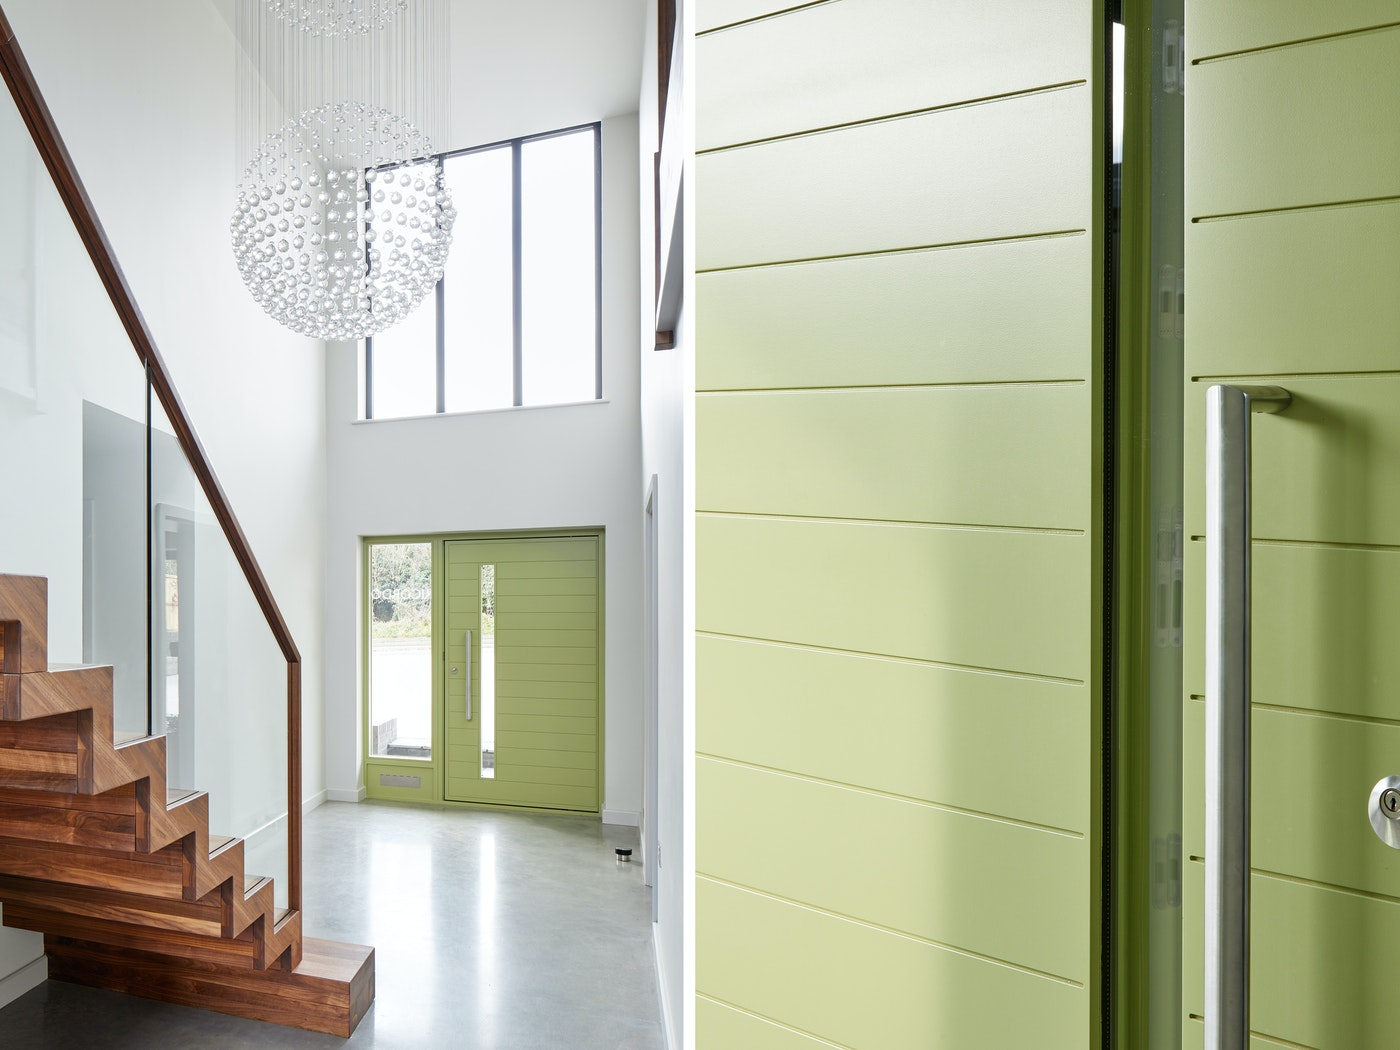 The clean white interior is the perfect base to show off the bold green door and rich walnut staircase